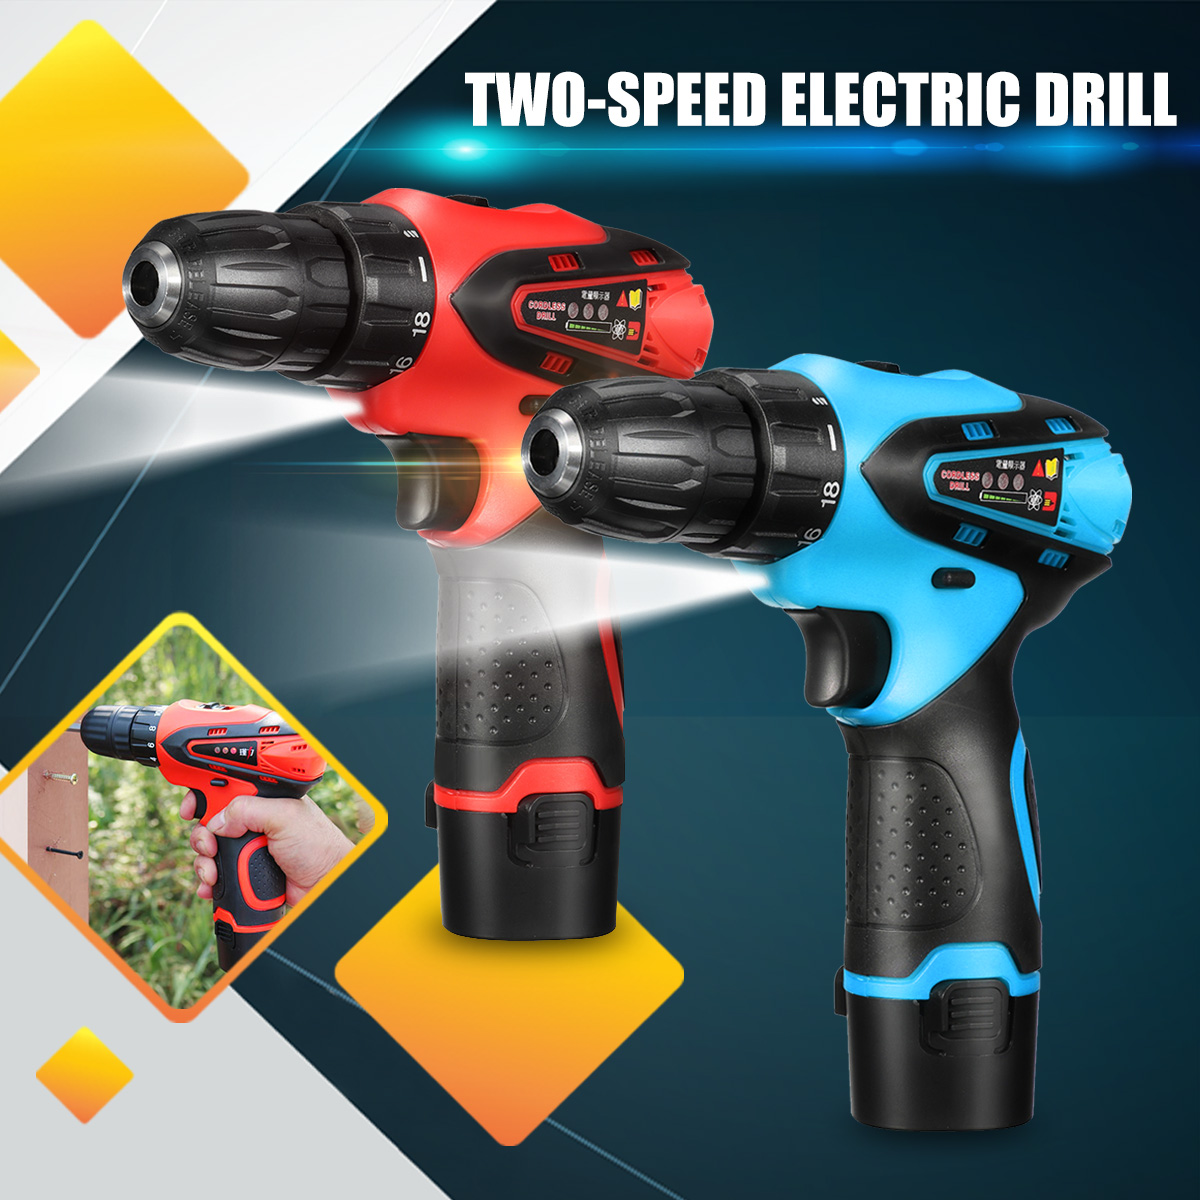 VOTO 12V 680W Cordless Screwdriver 2 Speed Electric Drill Lithium Battery Power Drills